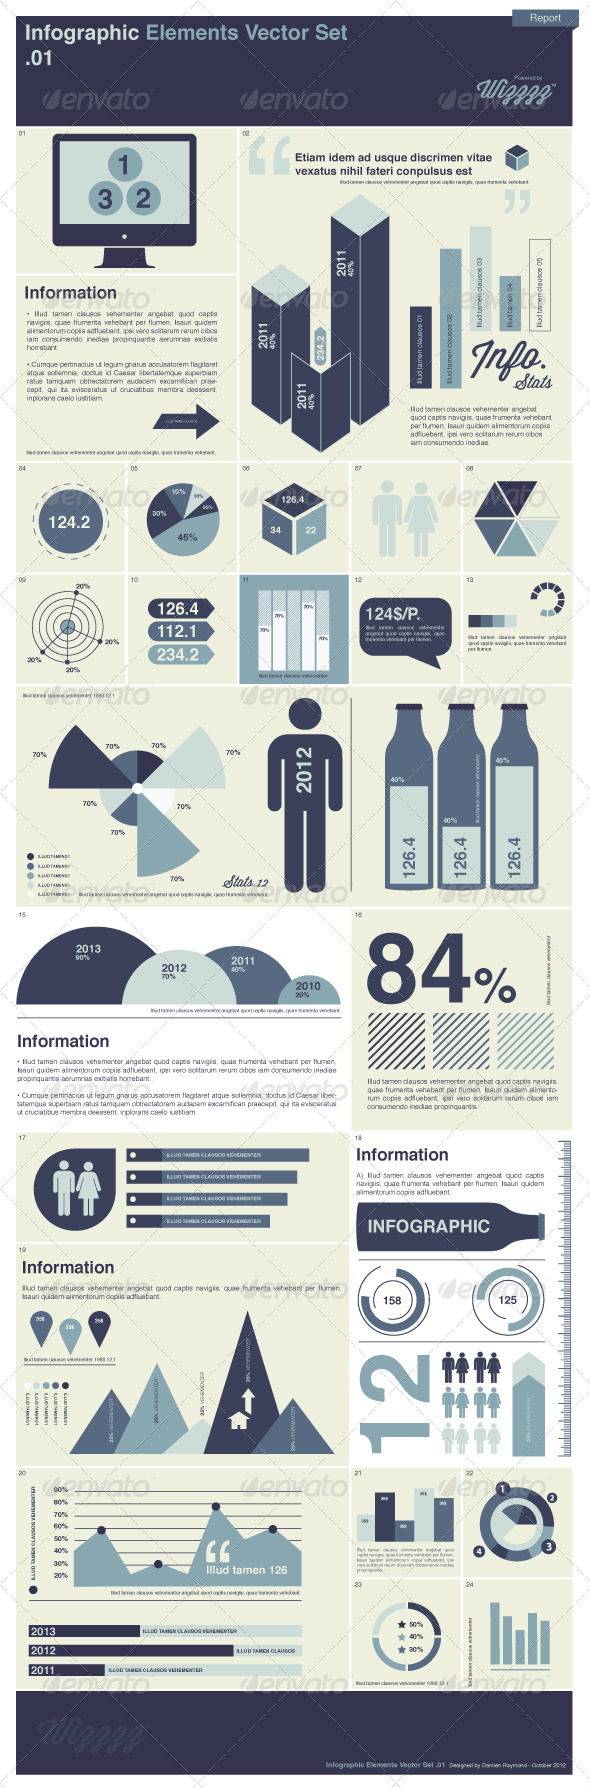 GraphicRiver Infographic Elements Vector Set 1 3345918